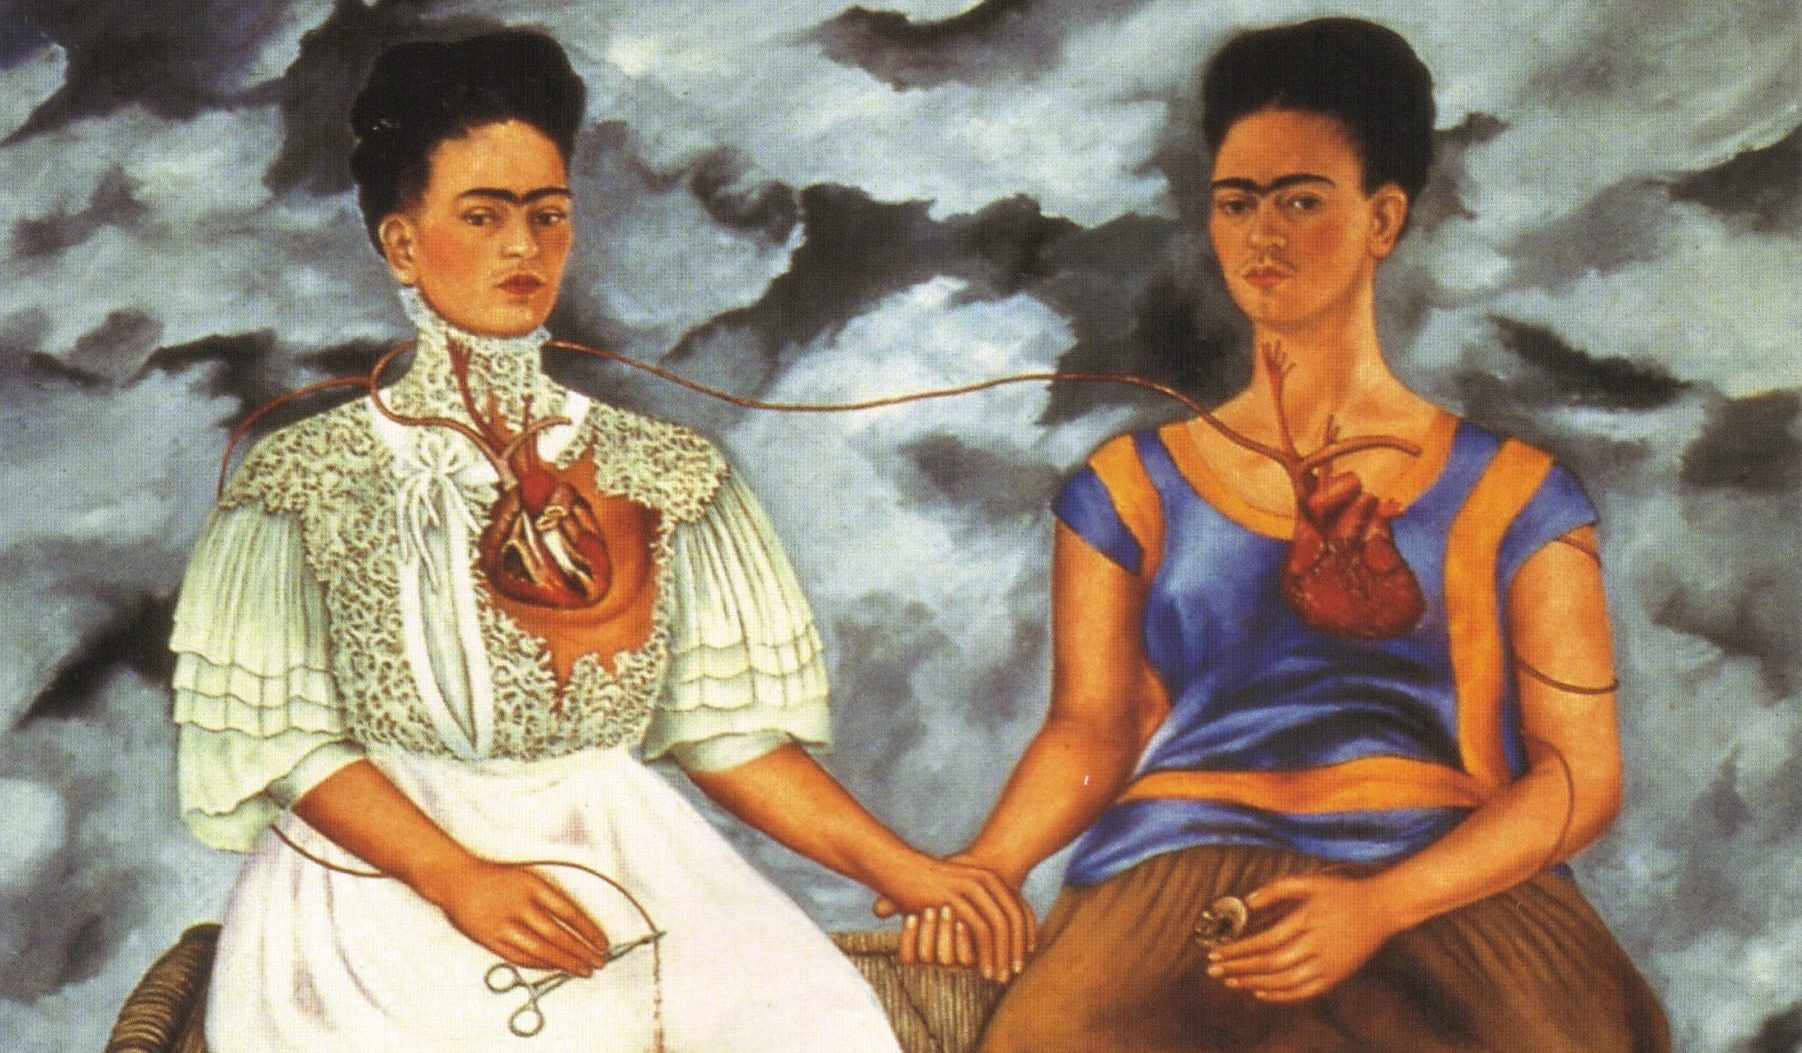 Cuadros De Frida Khalo Celebrating Women 39s History In Art Frida Kahlo Westbury